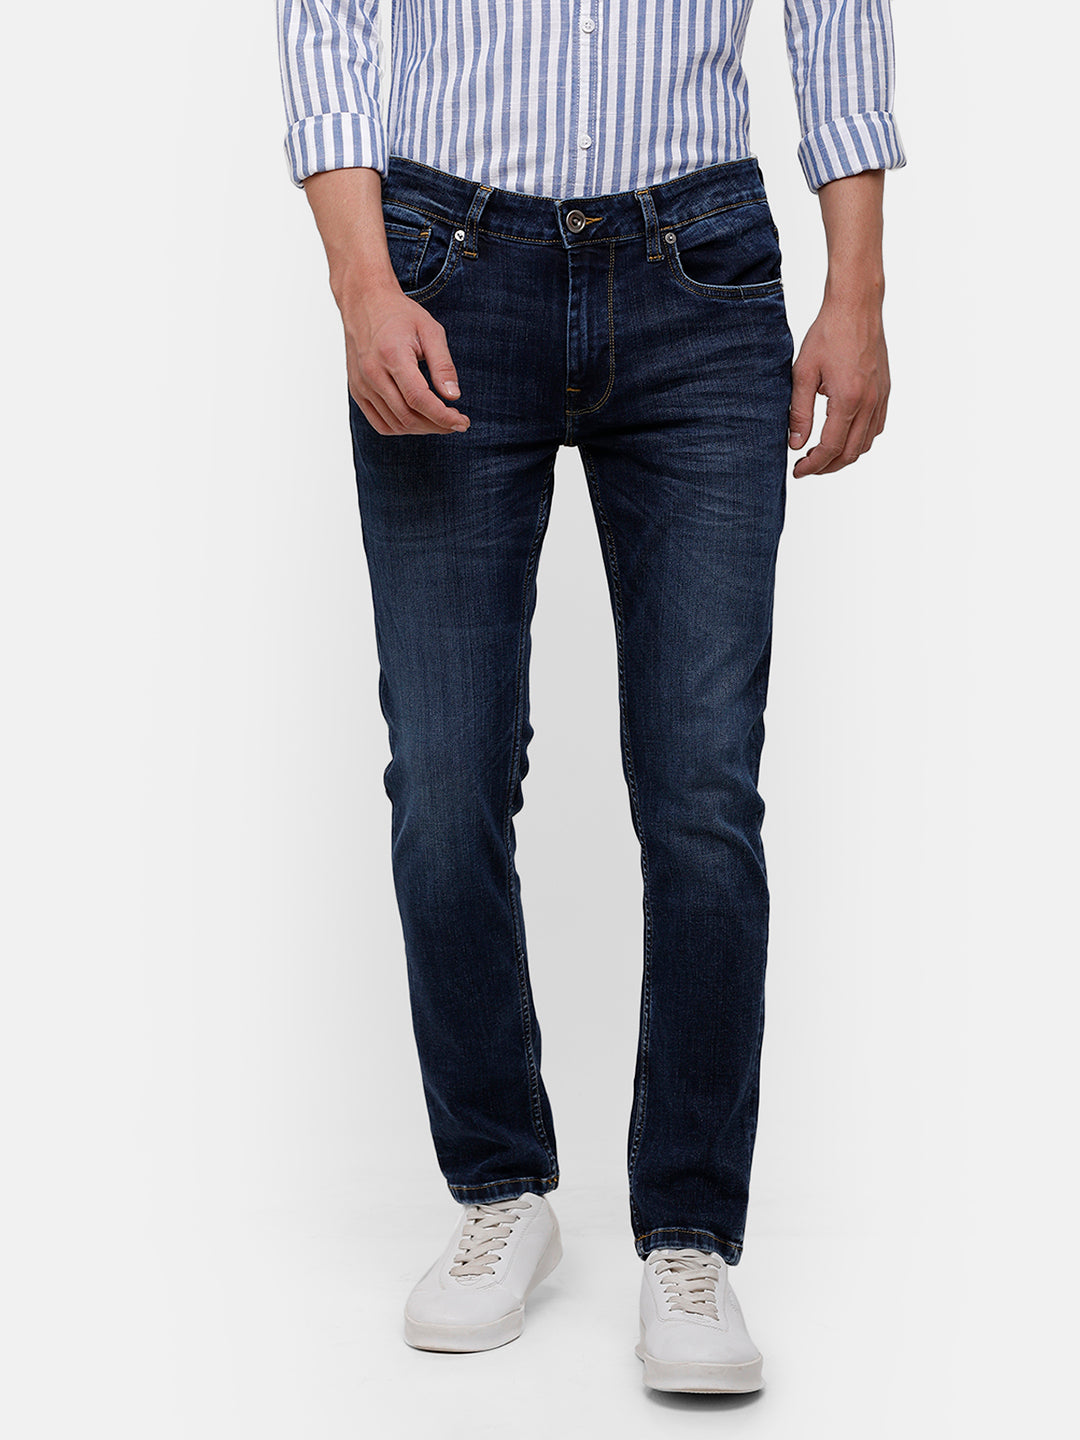 Men's Dark Indigo clean wash denim